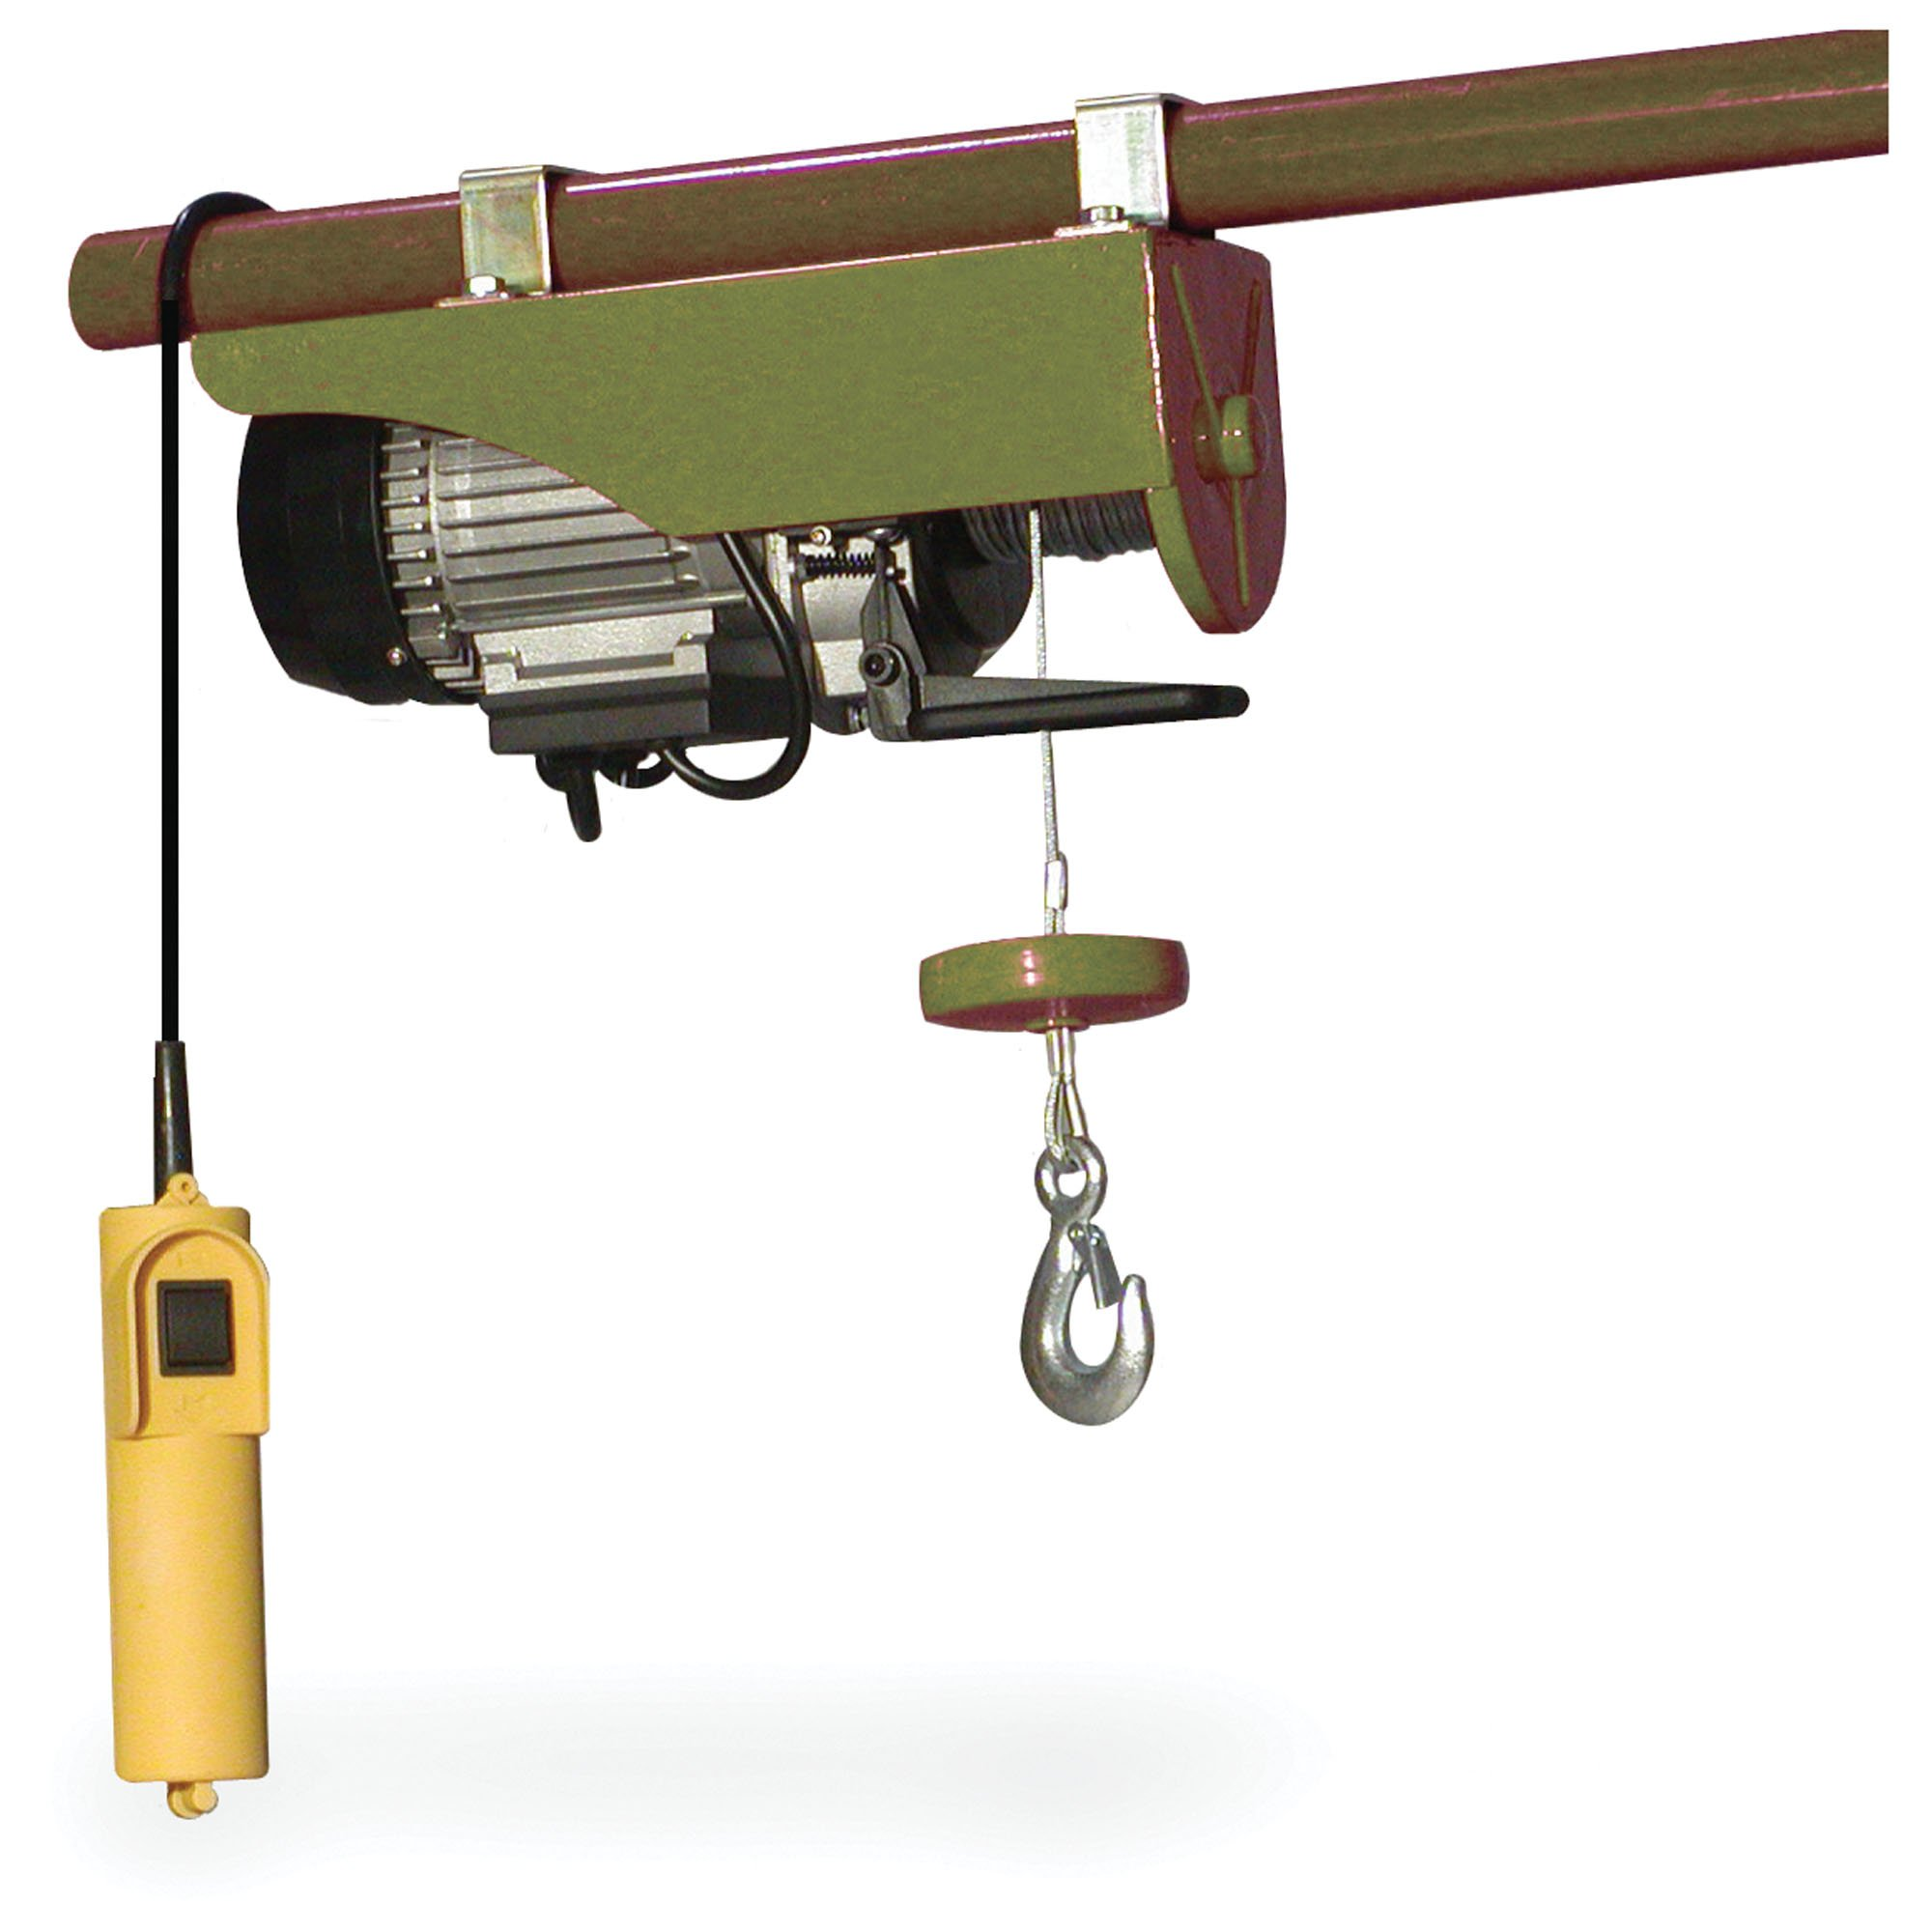 Sportsman Series EHOISTUL 440 lbs. Lift Electric Hoist